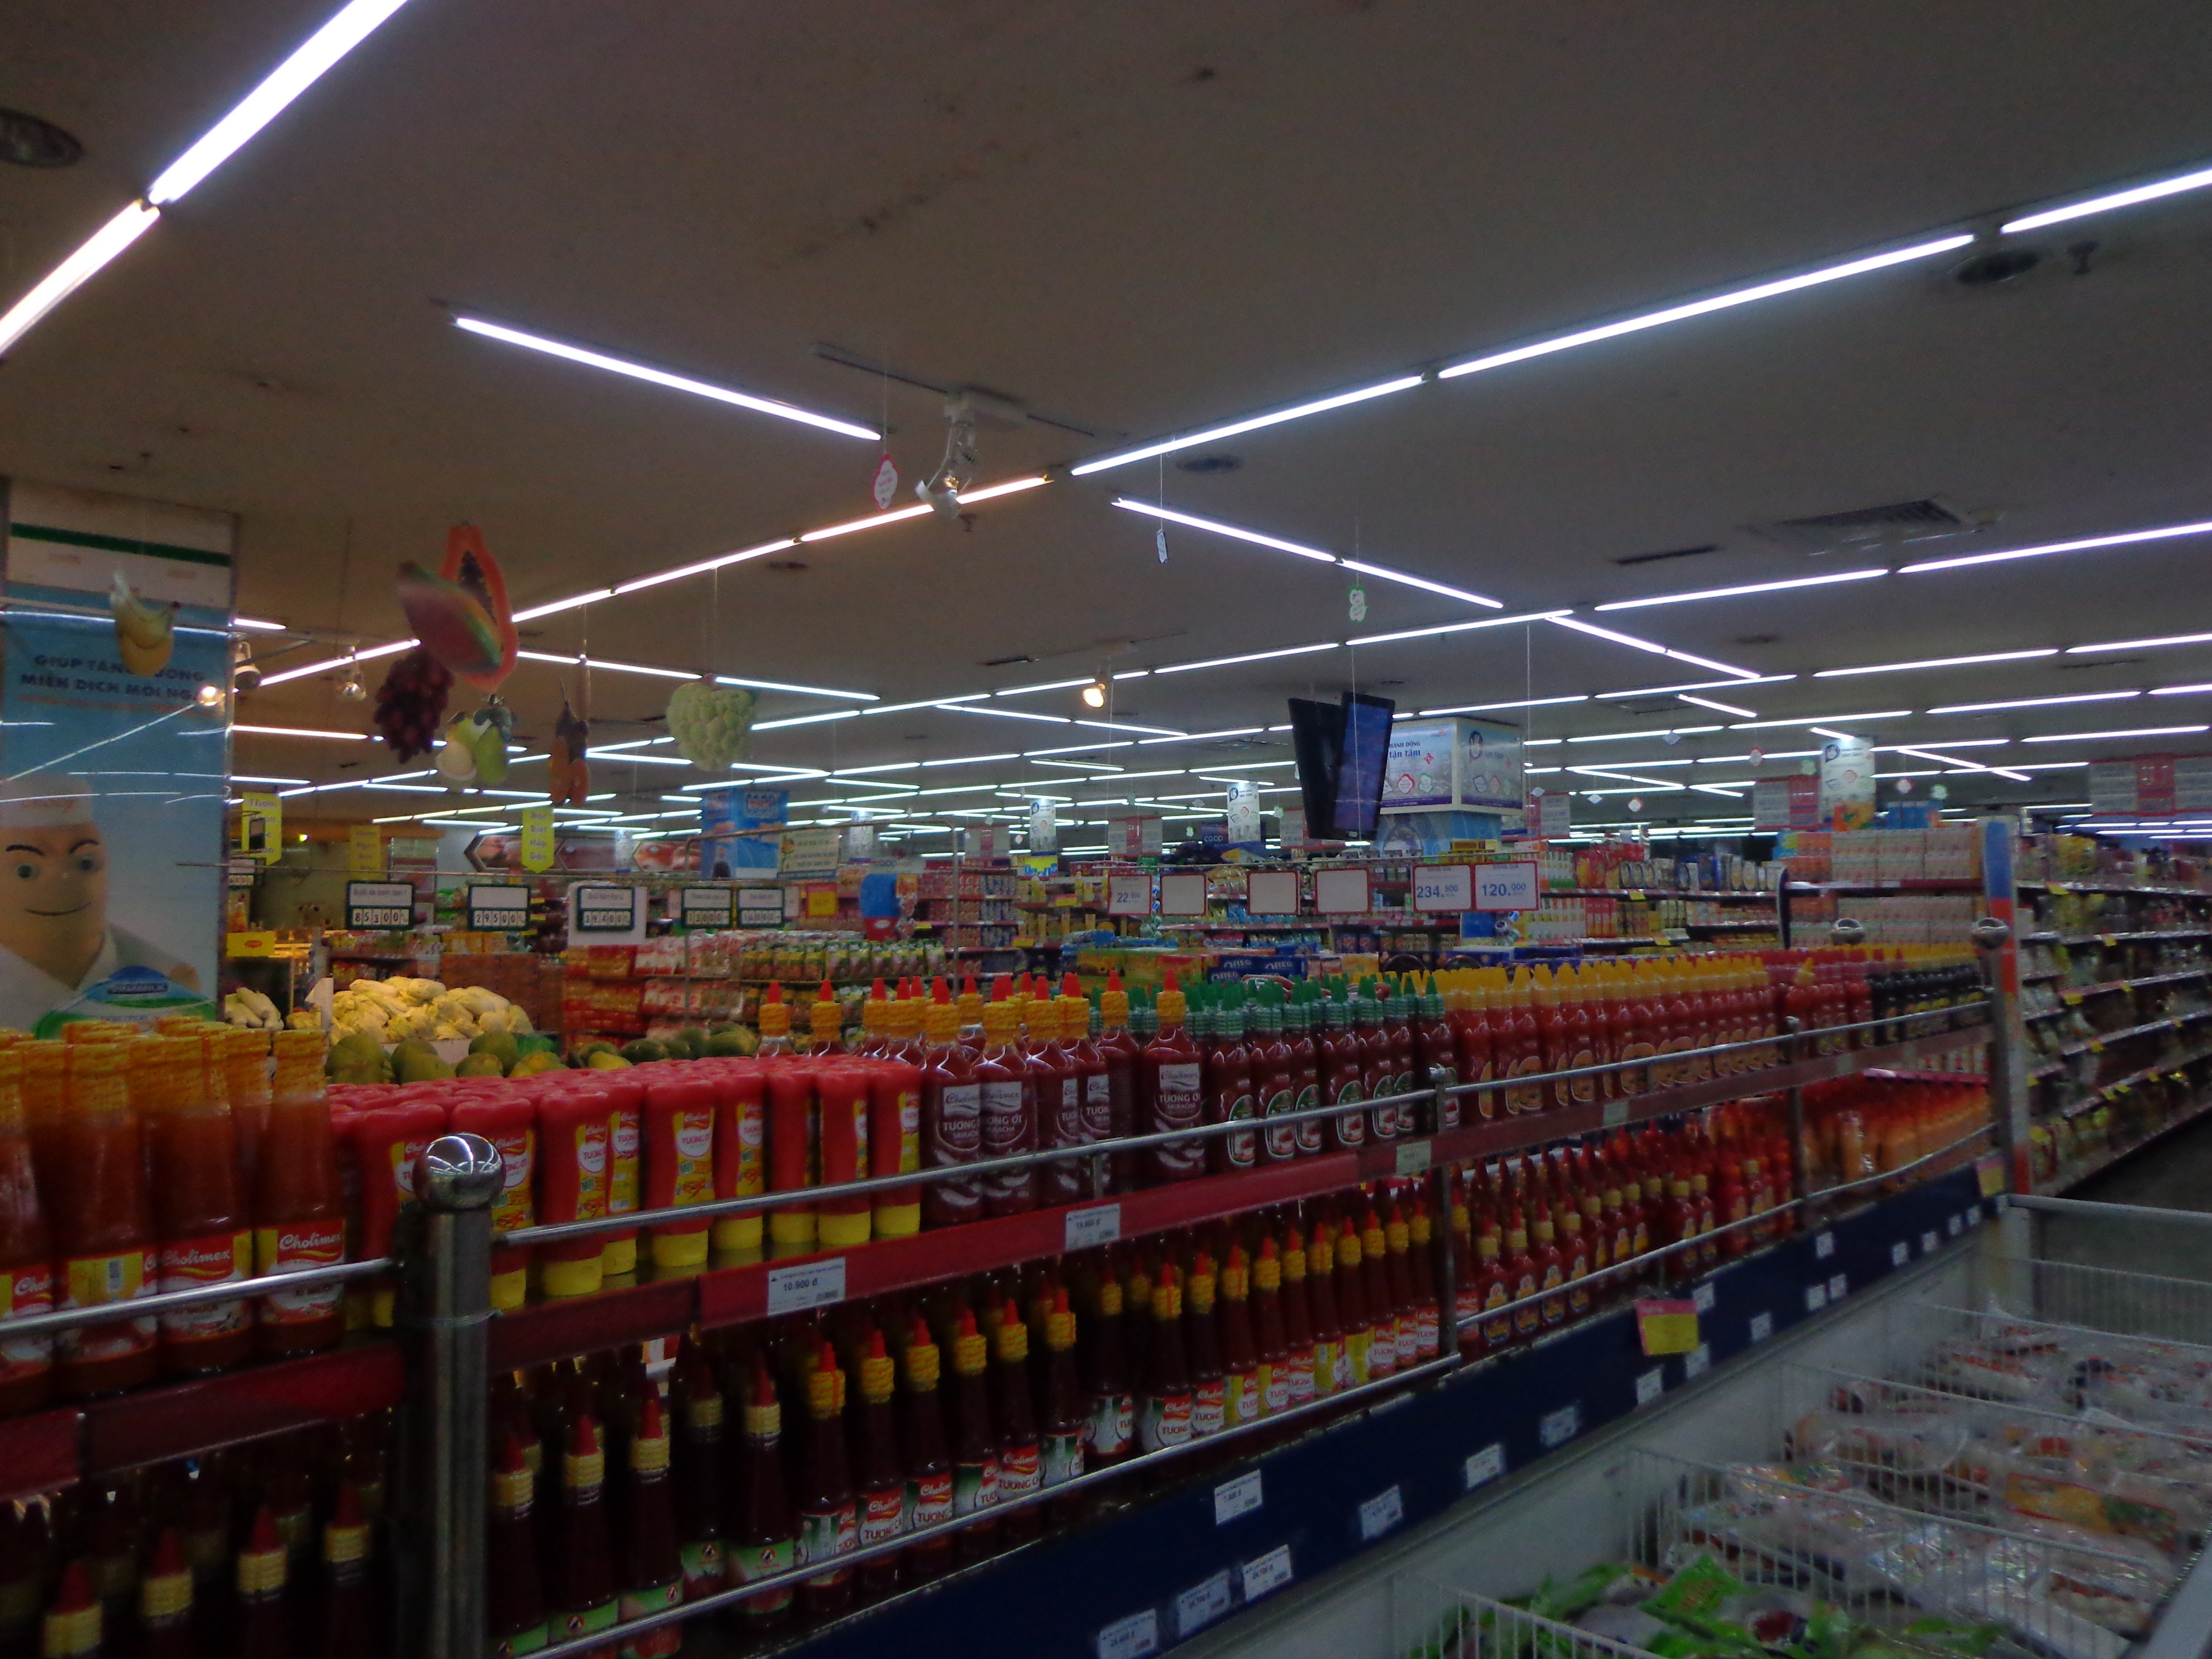 The co-operative supermarket in Hue isn't much different from those in Bangalore.